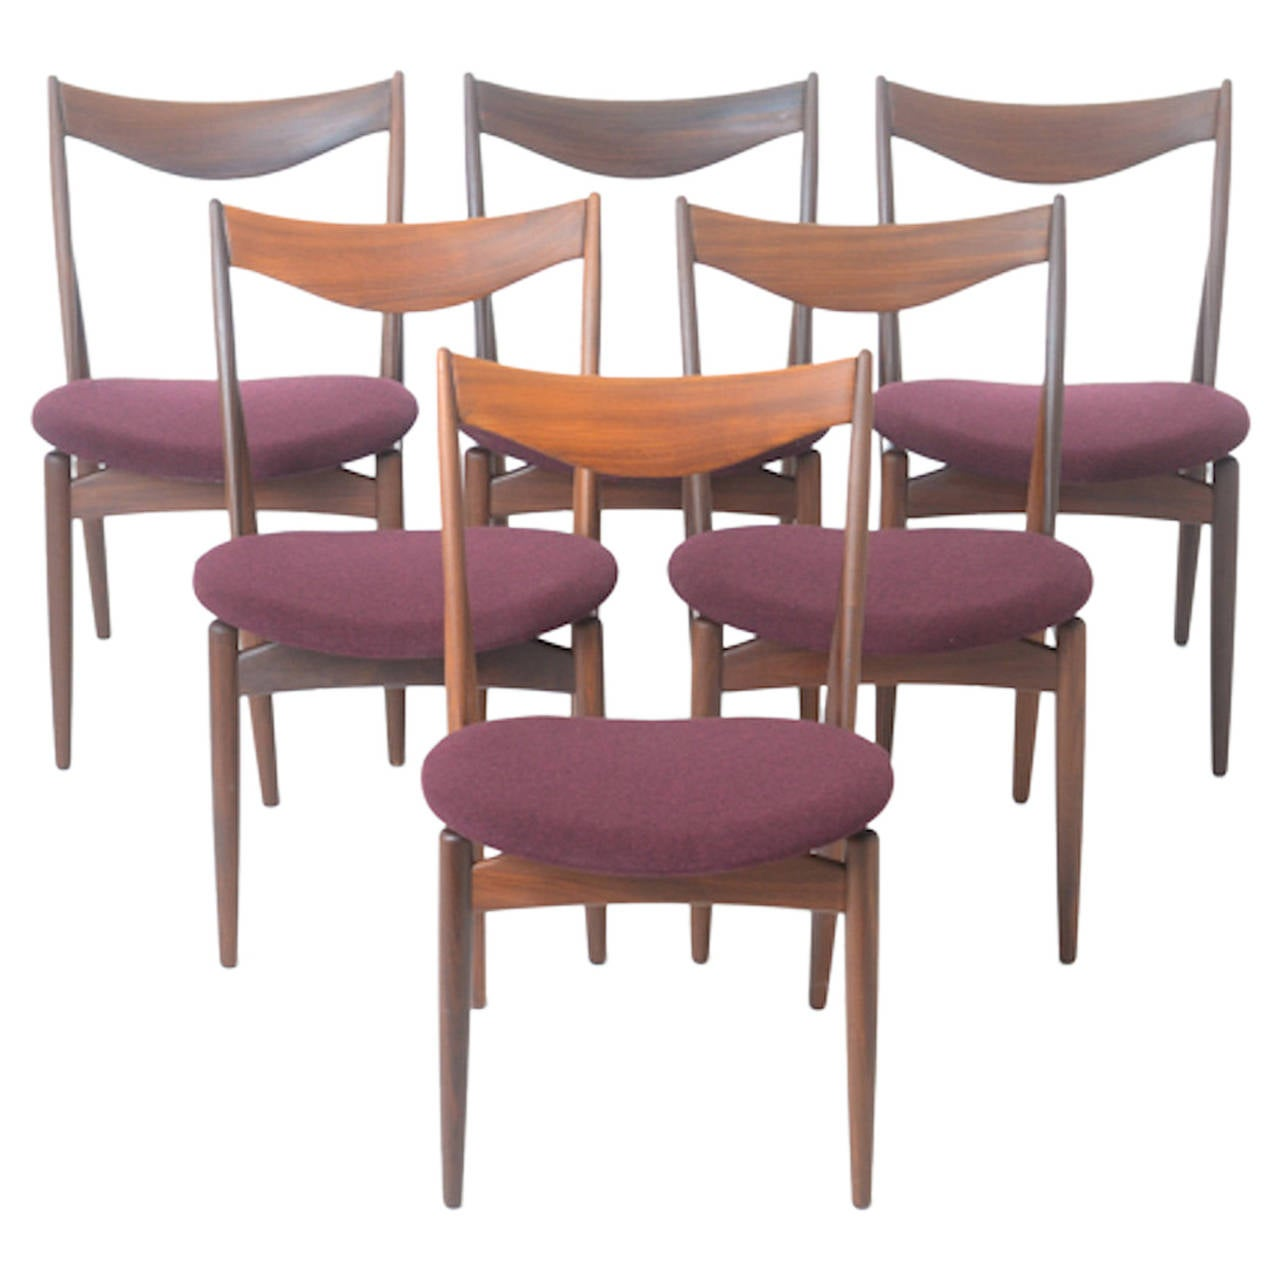 Mid century danish modern teak dining chairs in for Dining room furniture modern